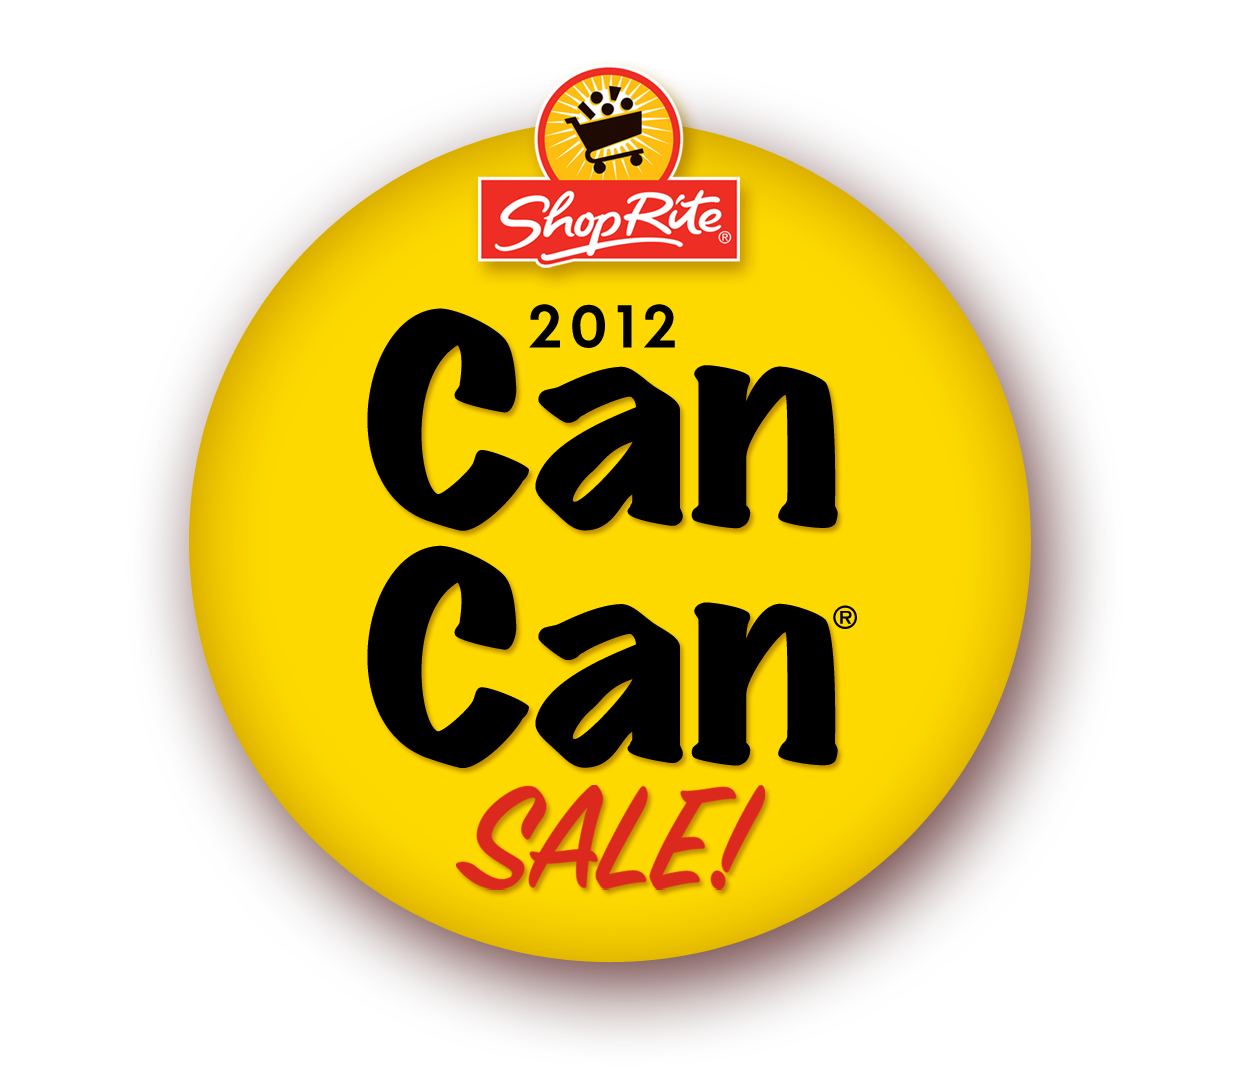 Shoprite can can sale 2015 - Did You Know That During Shoprite S Can Can Sale 1 5 1 21 You Can Help Donate To Local Food Banks Last Year In 2011 Shoprite Donated 40 000 Cans Of